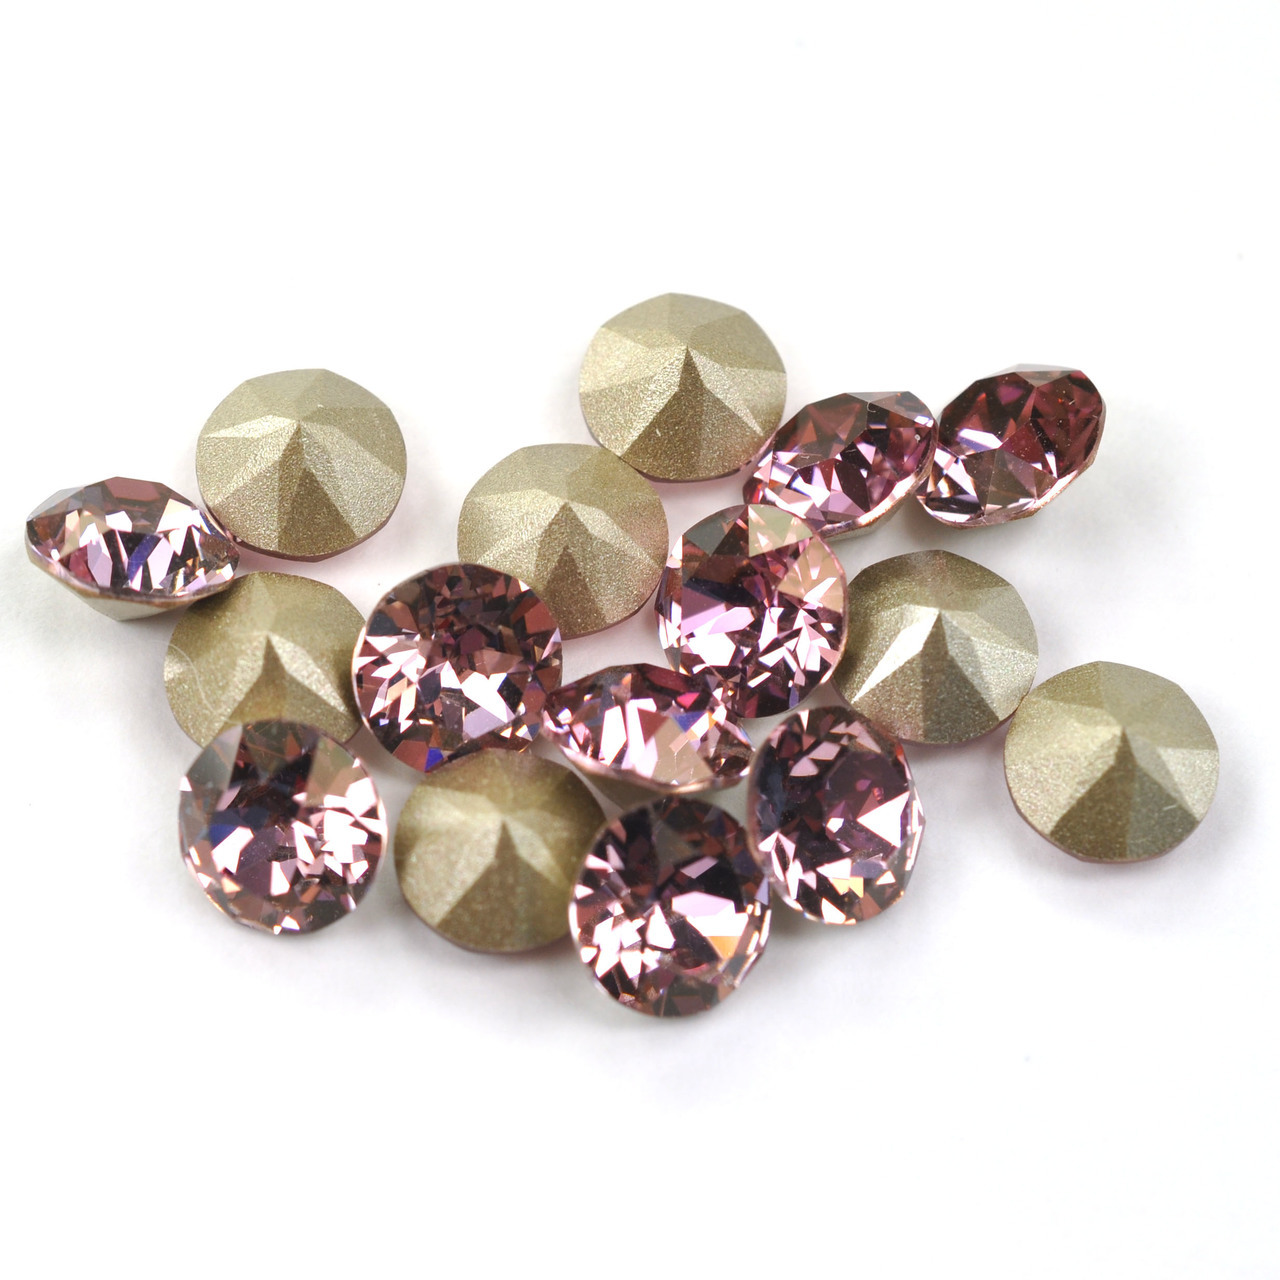 Swarovski Elements, Xirius Chaton 1088 PP14, Blush Rose 2mm 10 buc